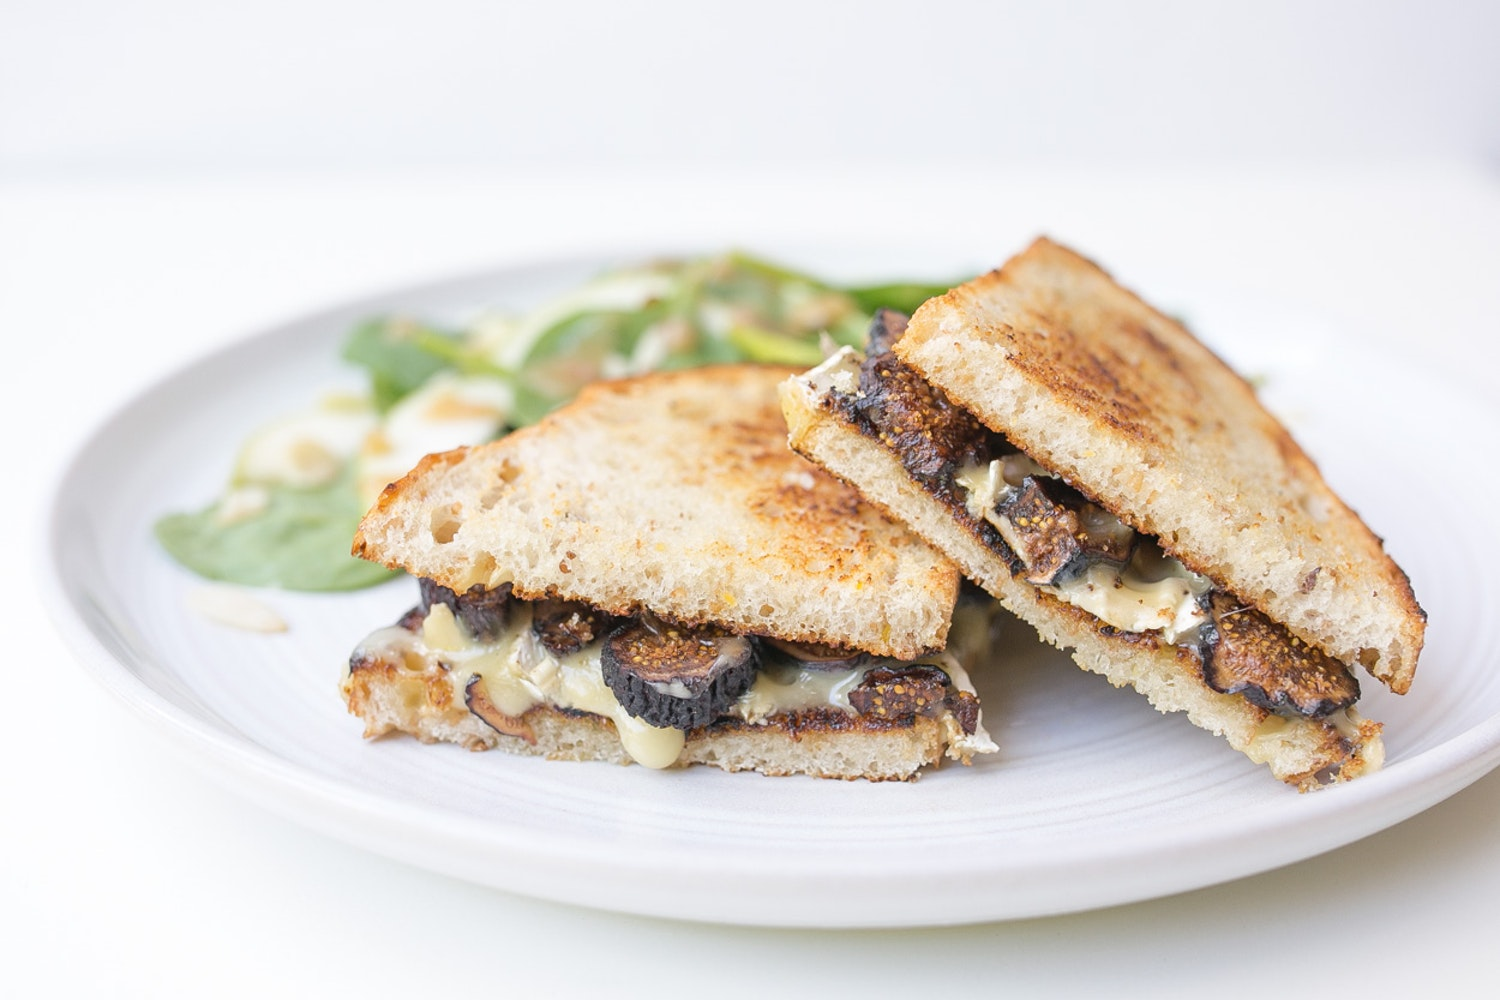 20151005 fig and brie grilled cheese nm 007.jpg?ixlib=rails 2.1